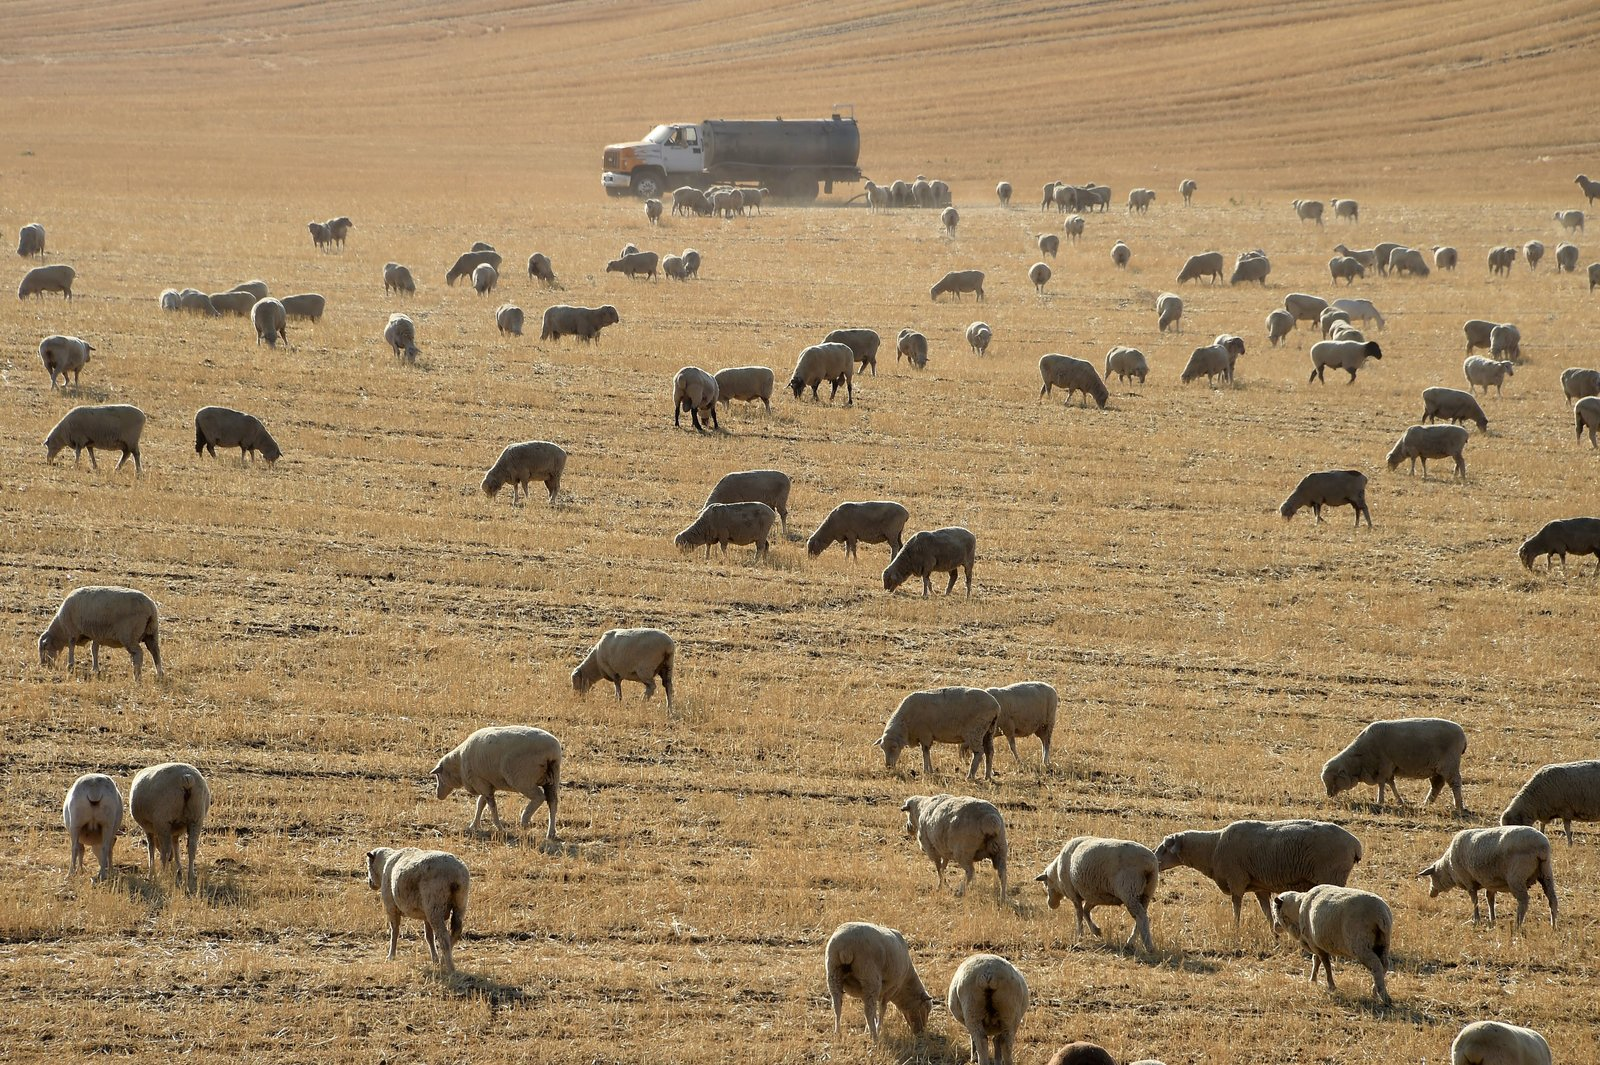 Farming in California has been deeply affected by drought